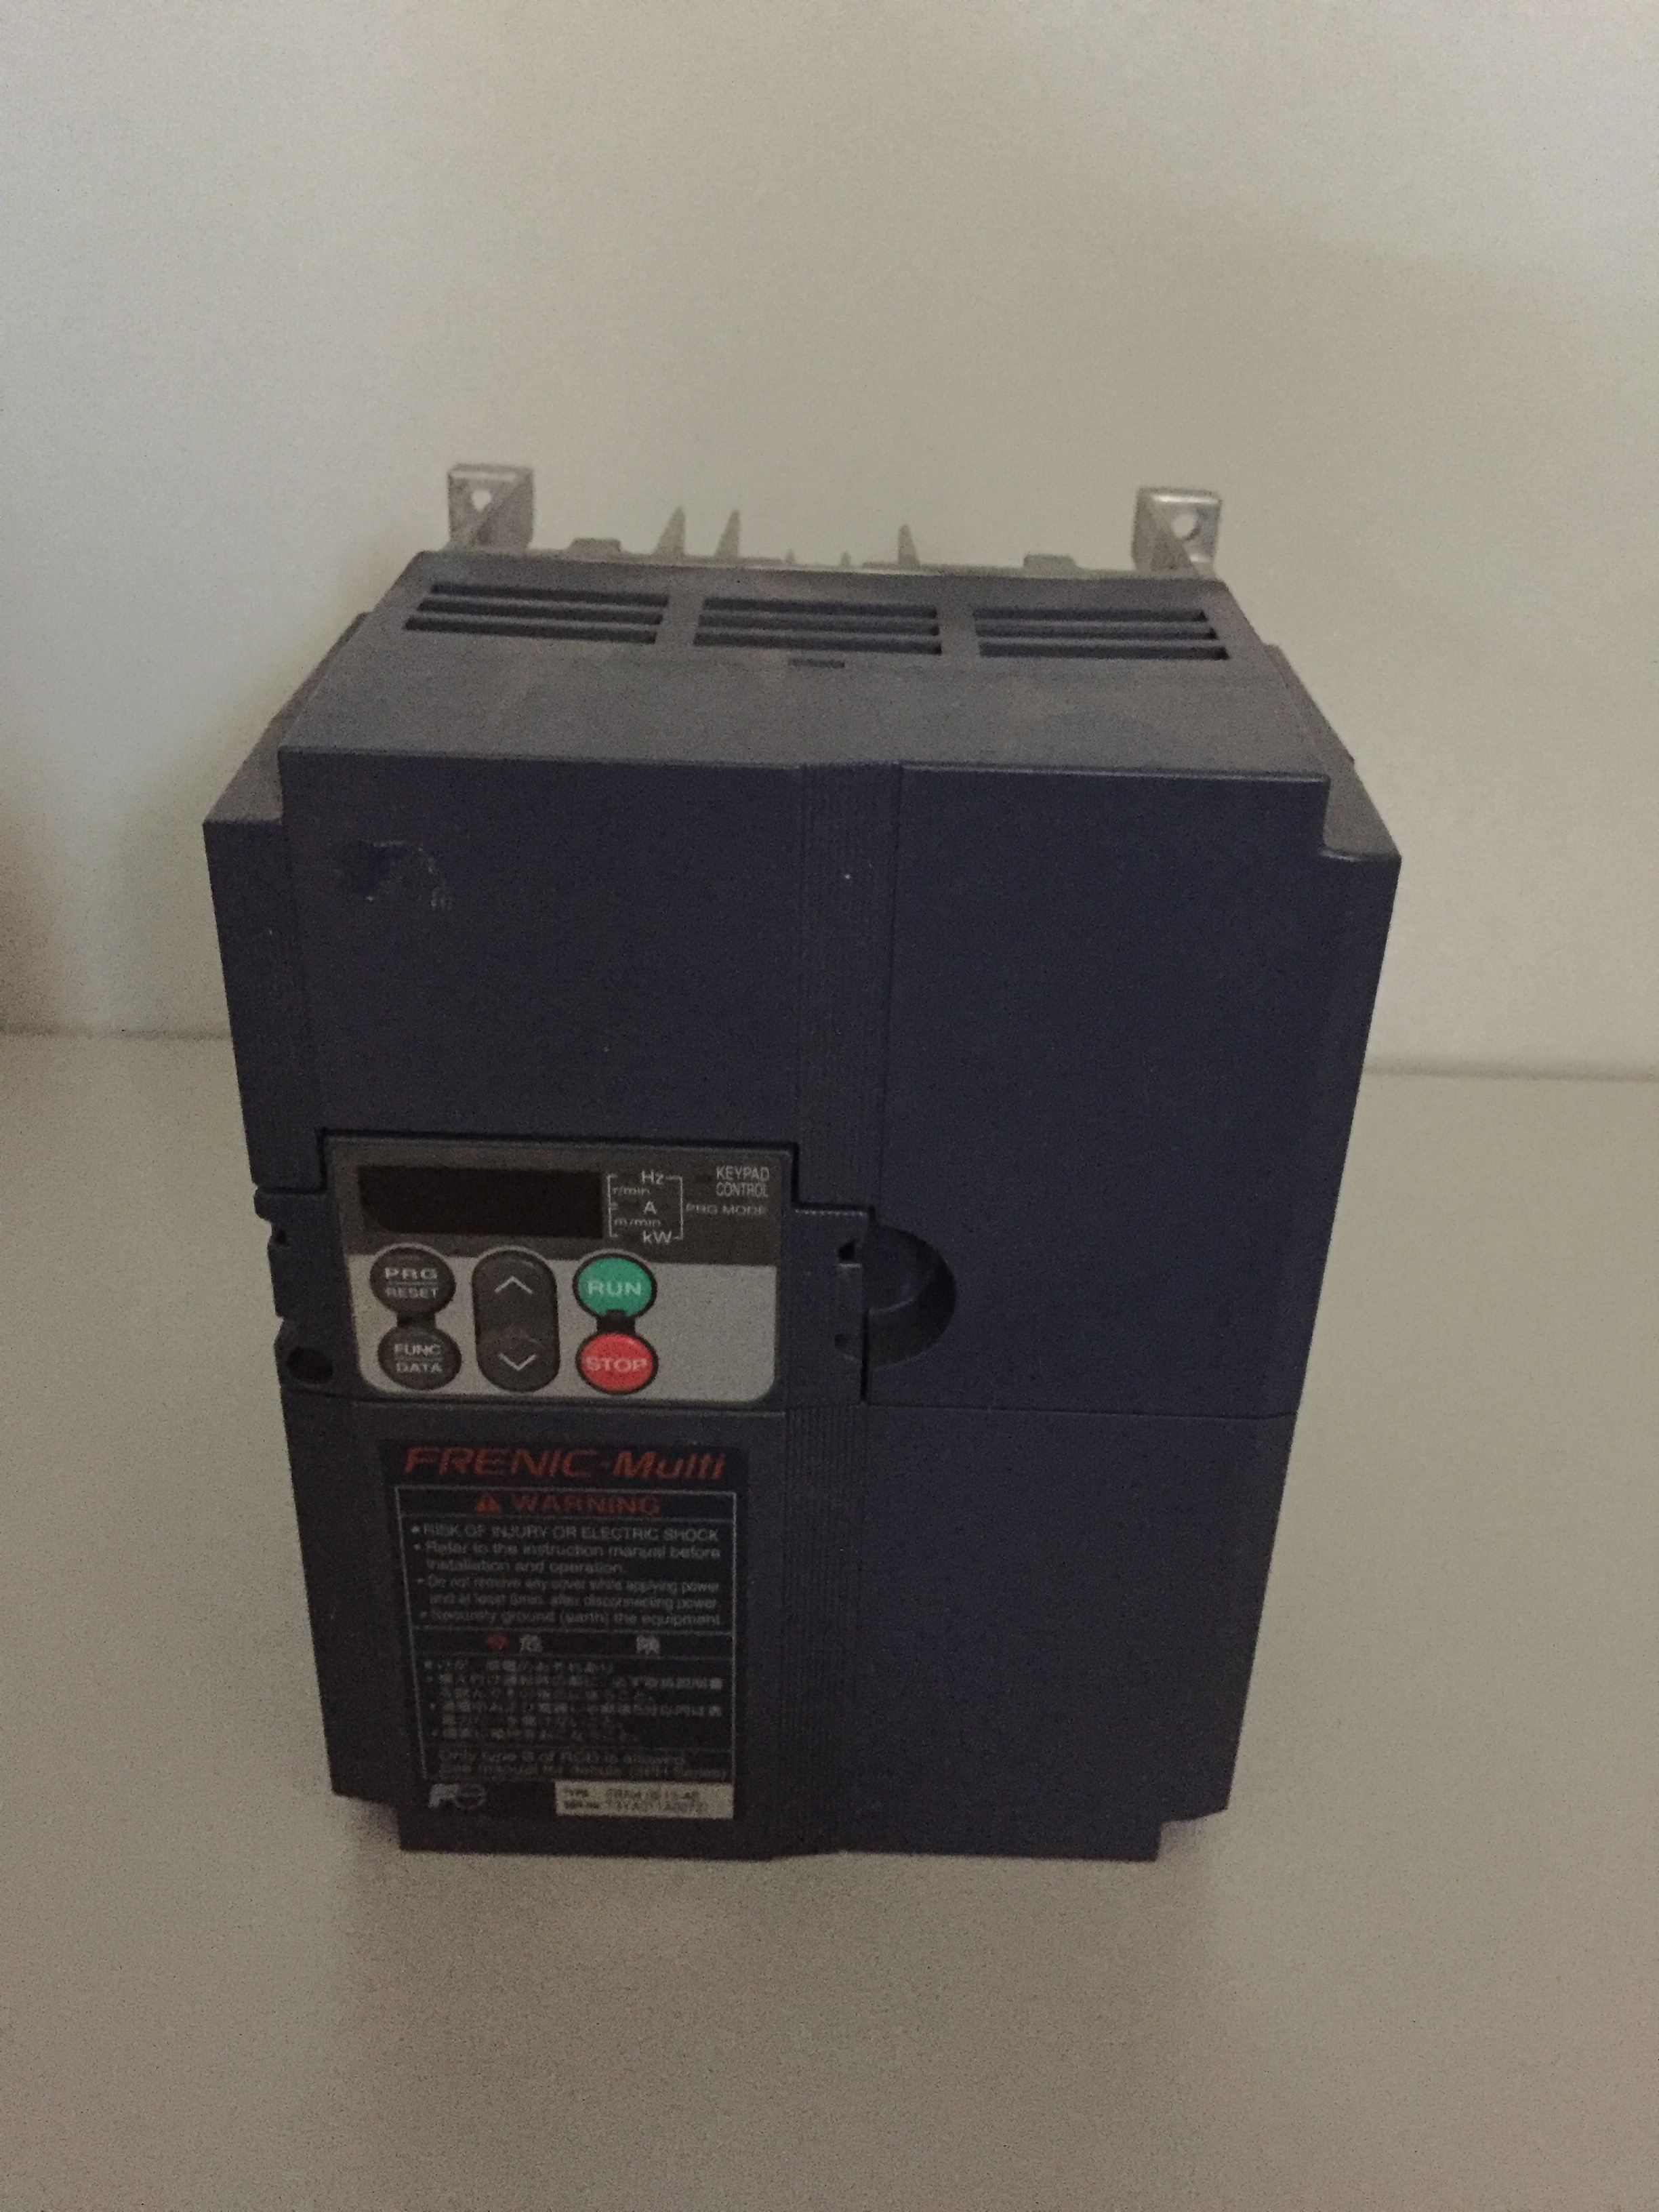 FRENIC MULTI FRN4.0E1S-4E INVERTER